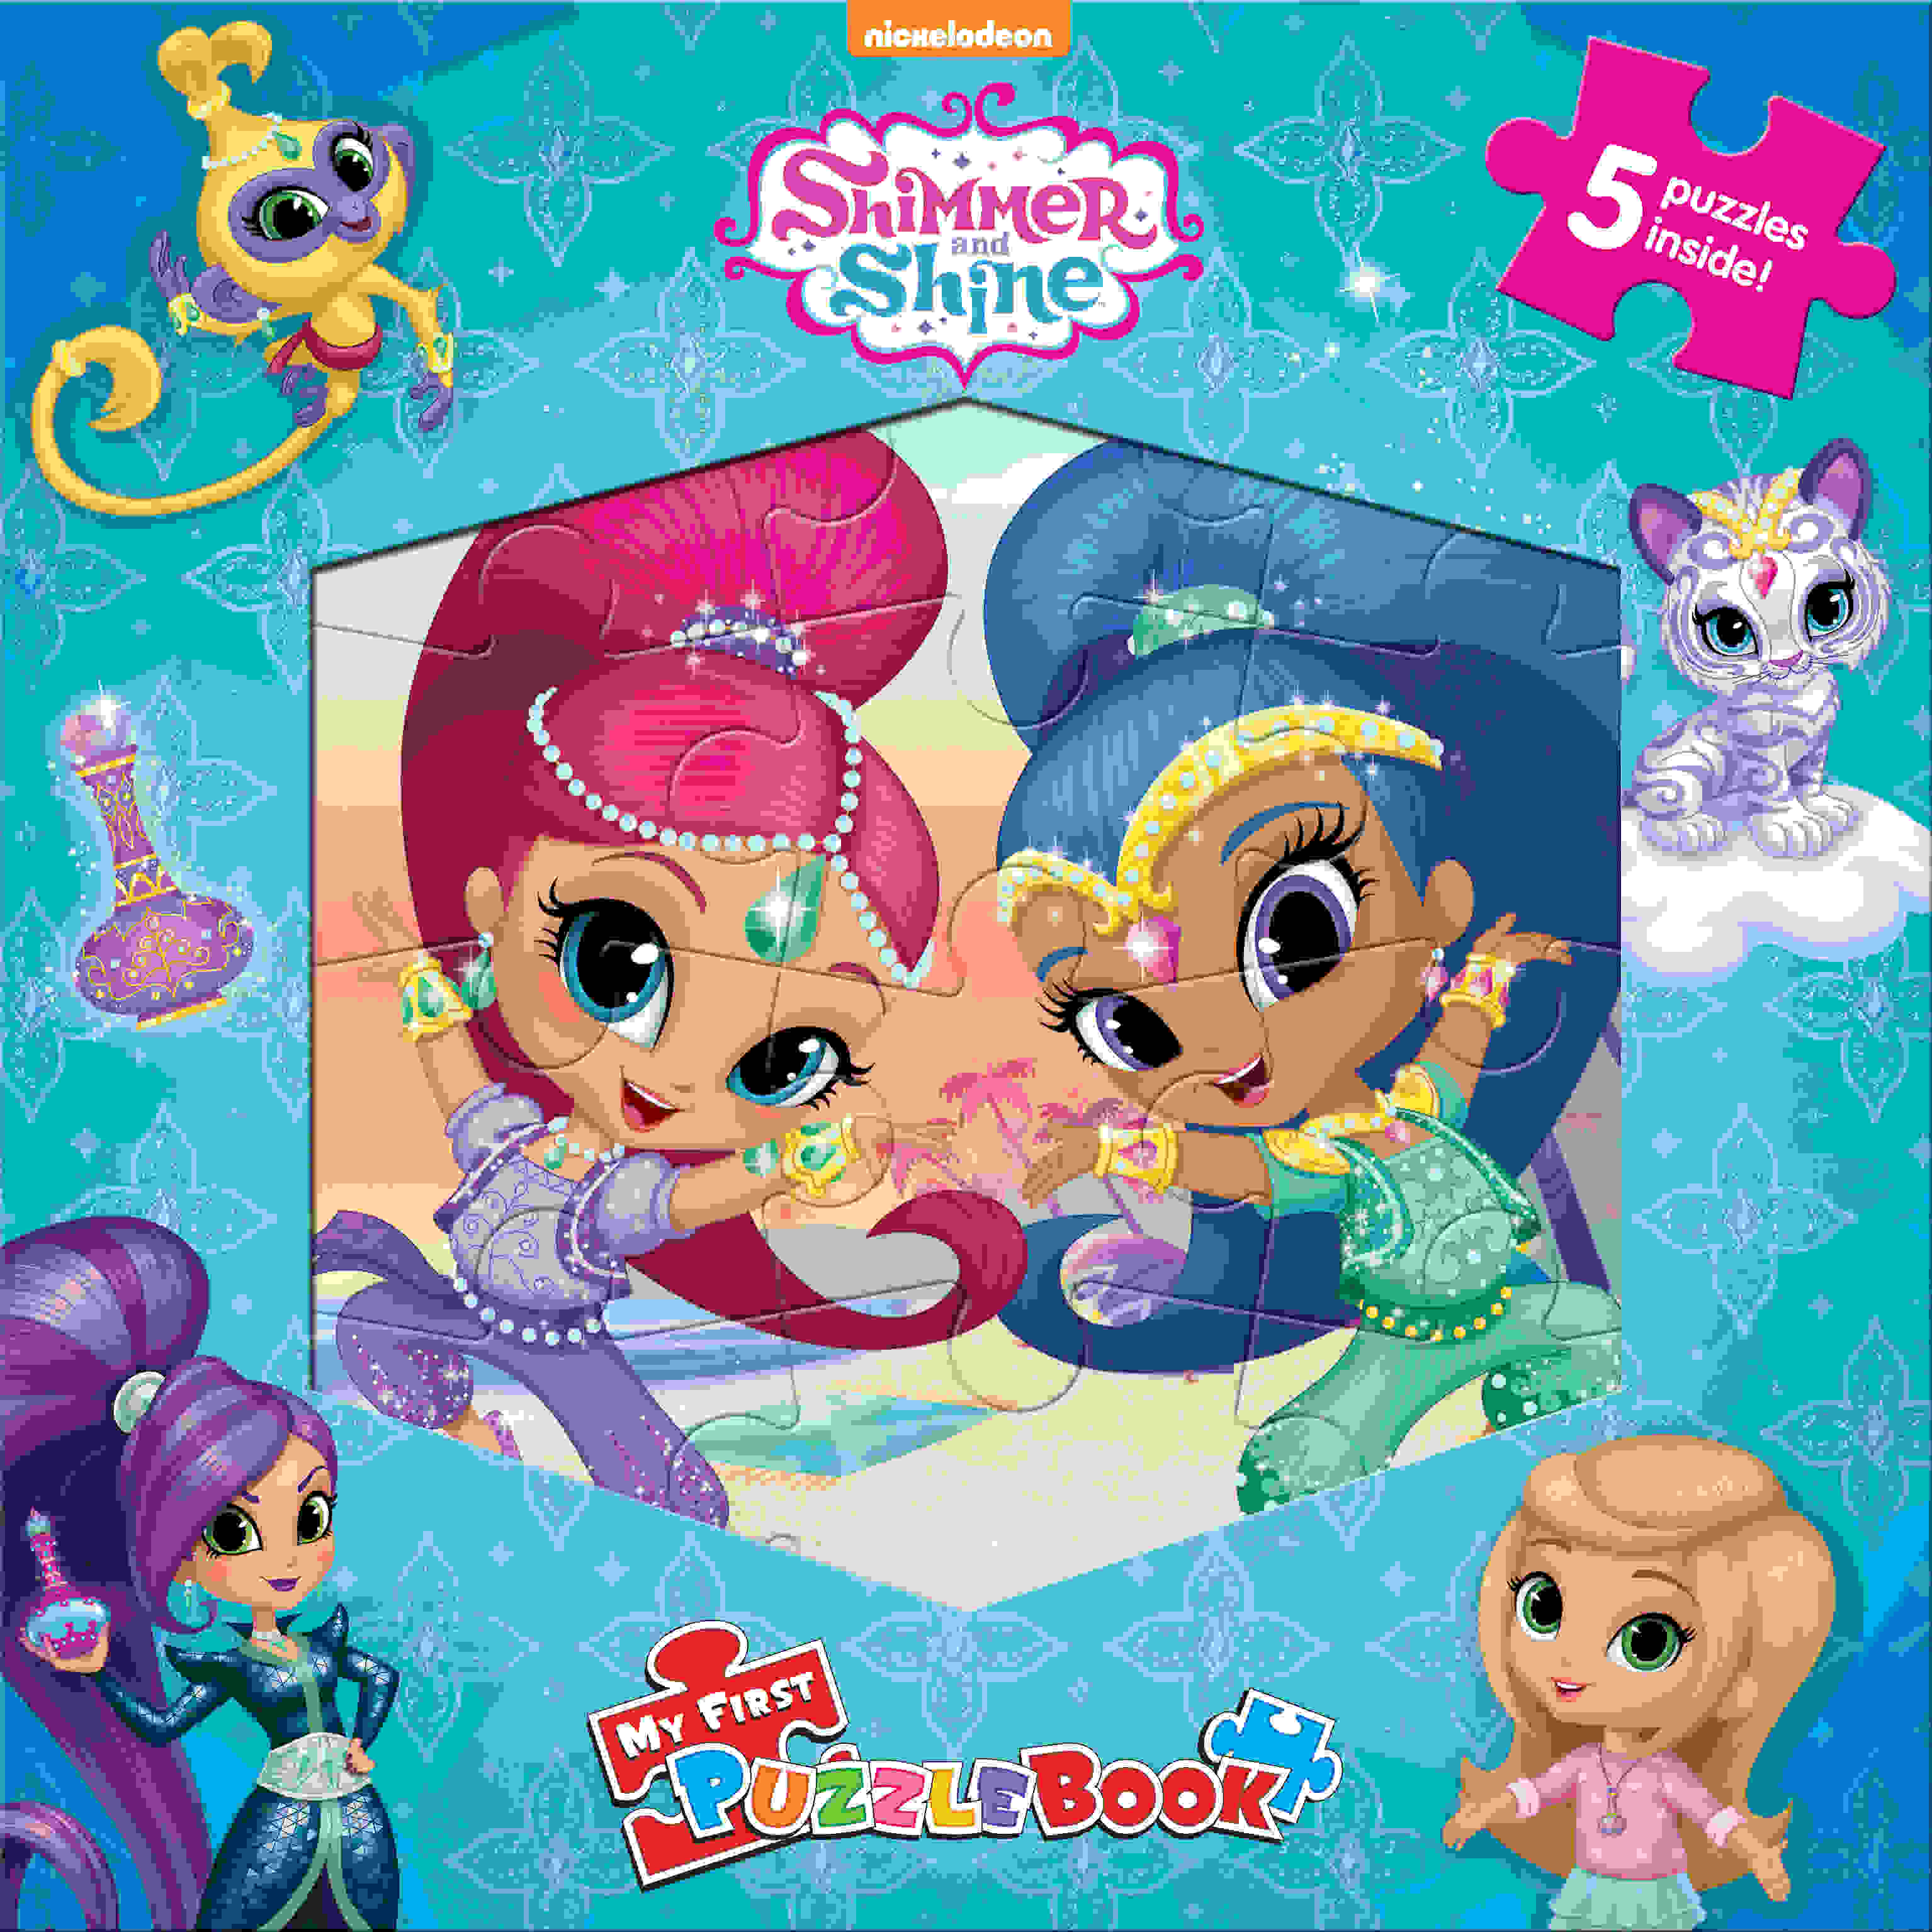 Shimmer & Shine - My First Puzzle Book